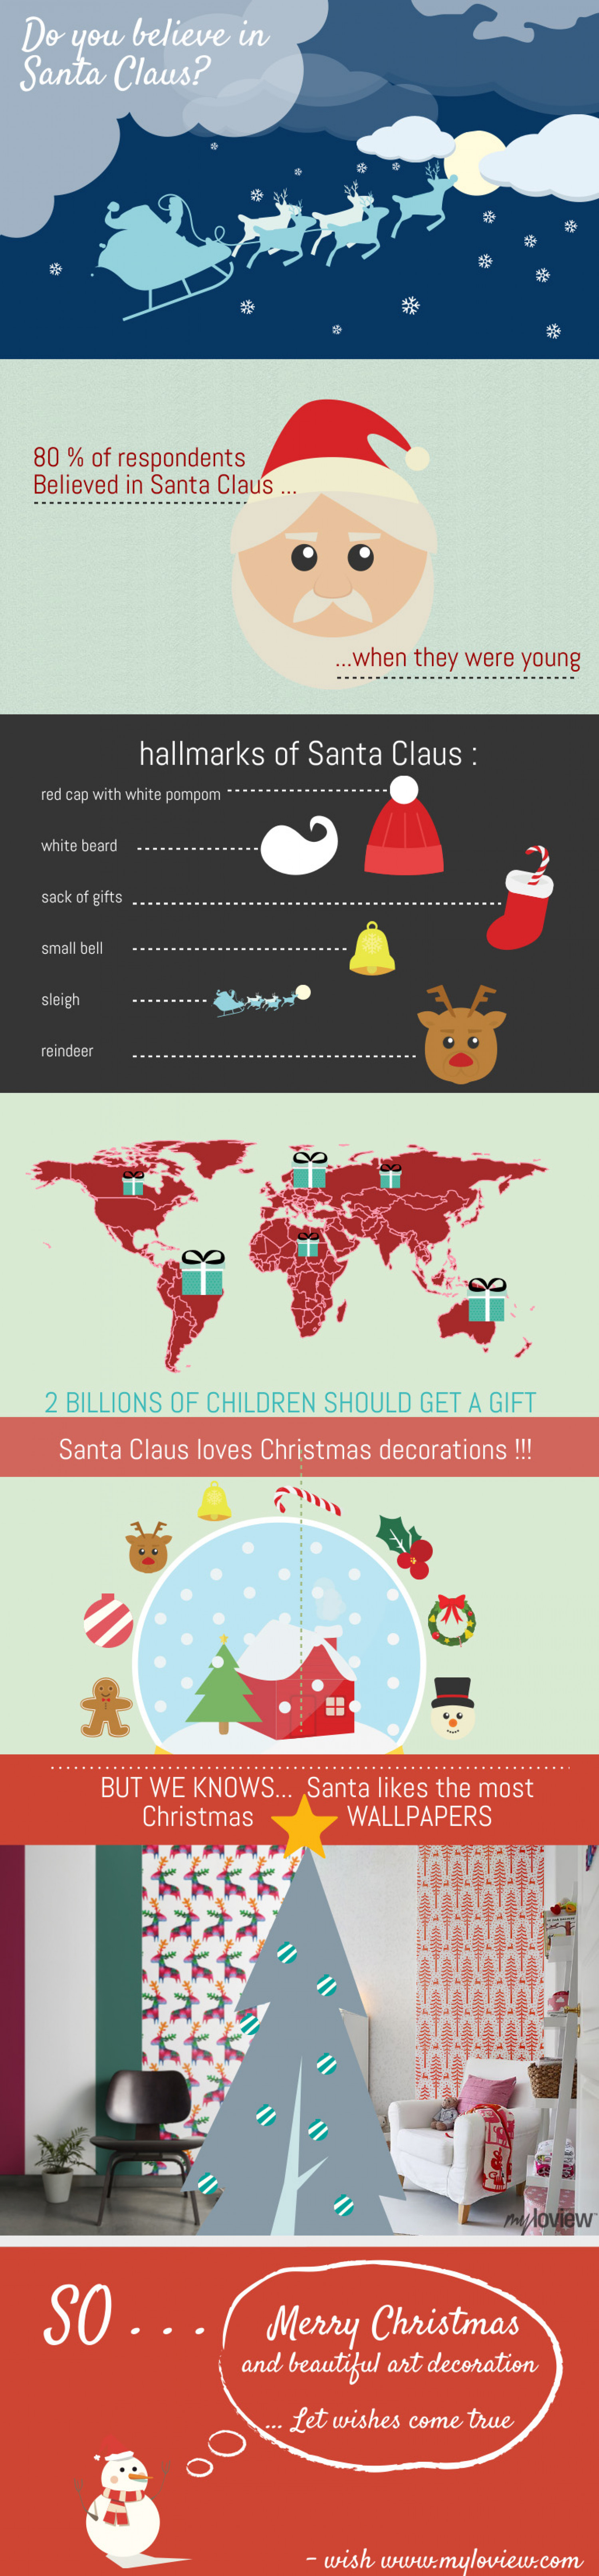 Do you believe in Santa Claus? Infographic